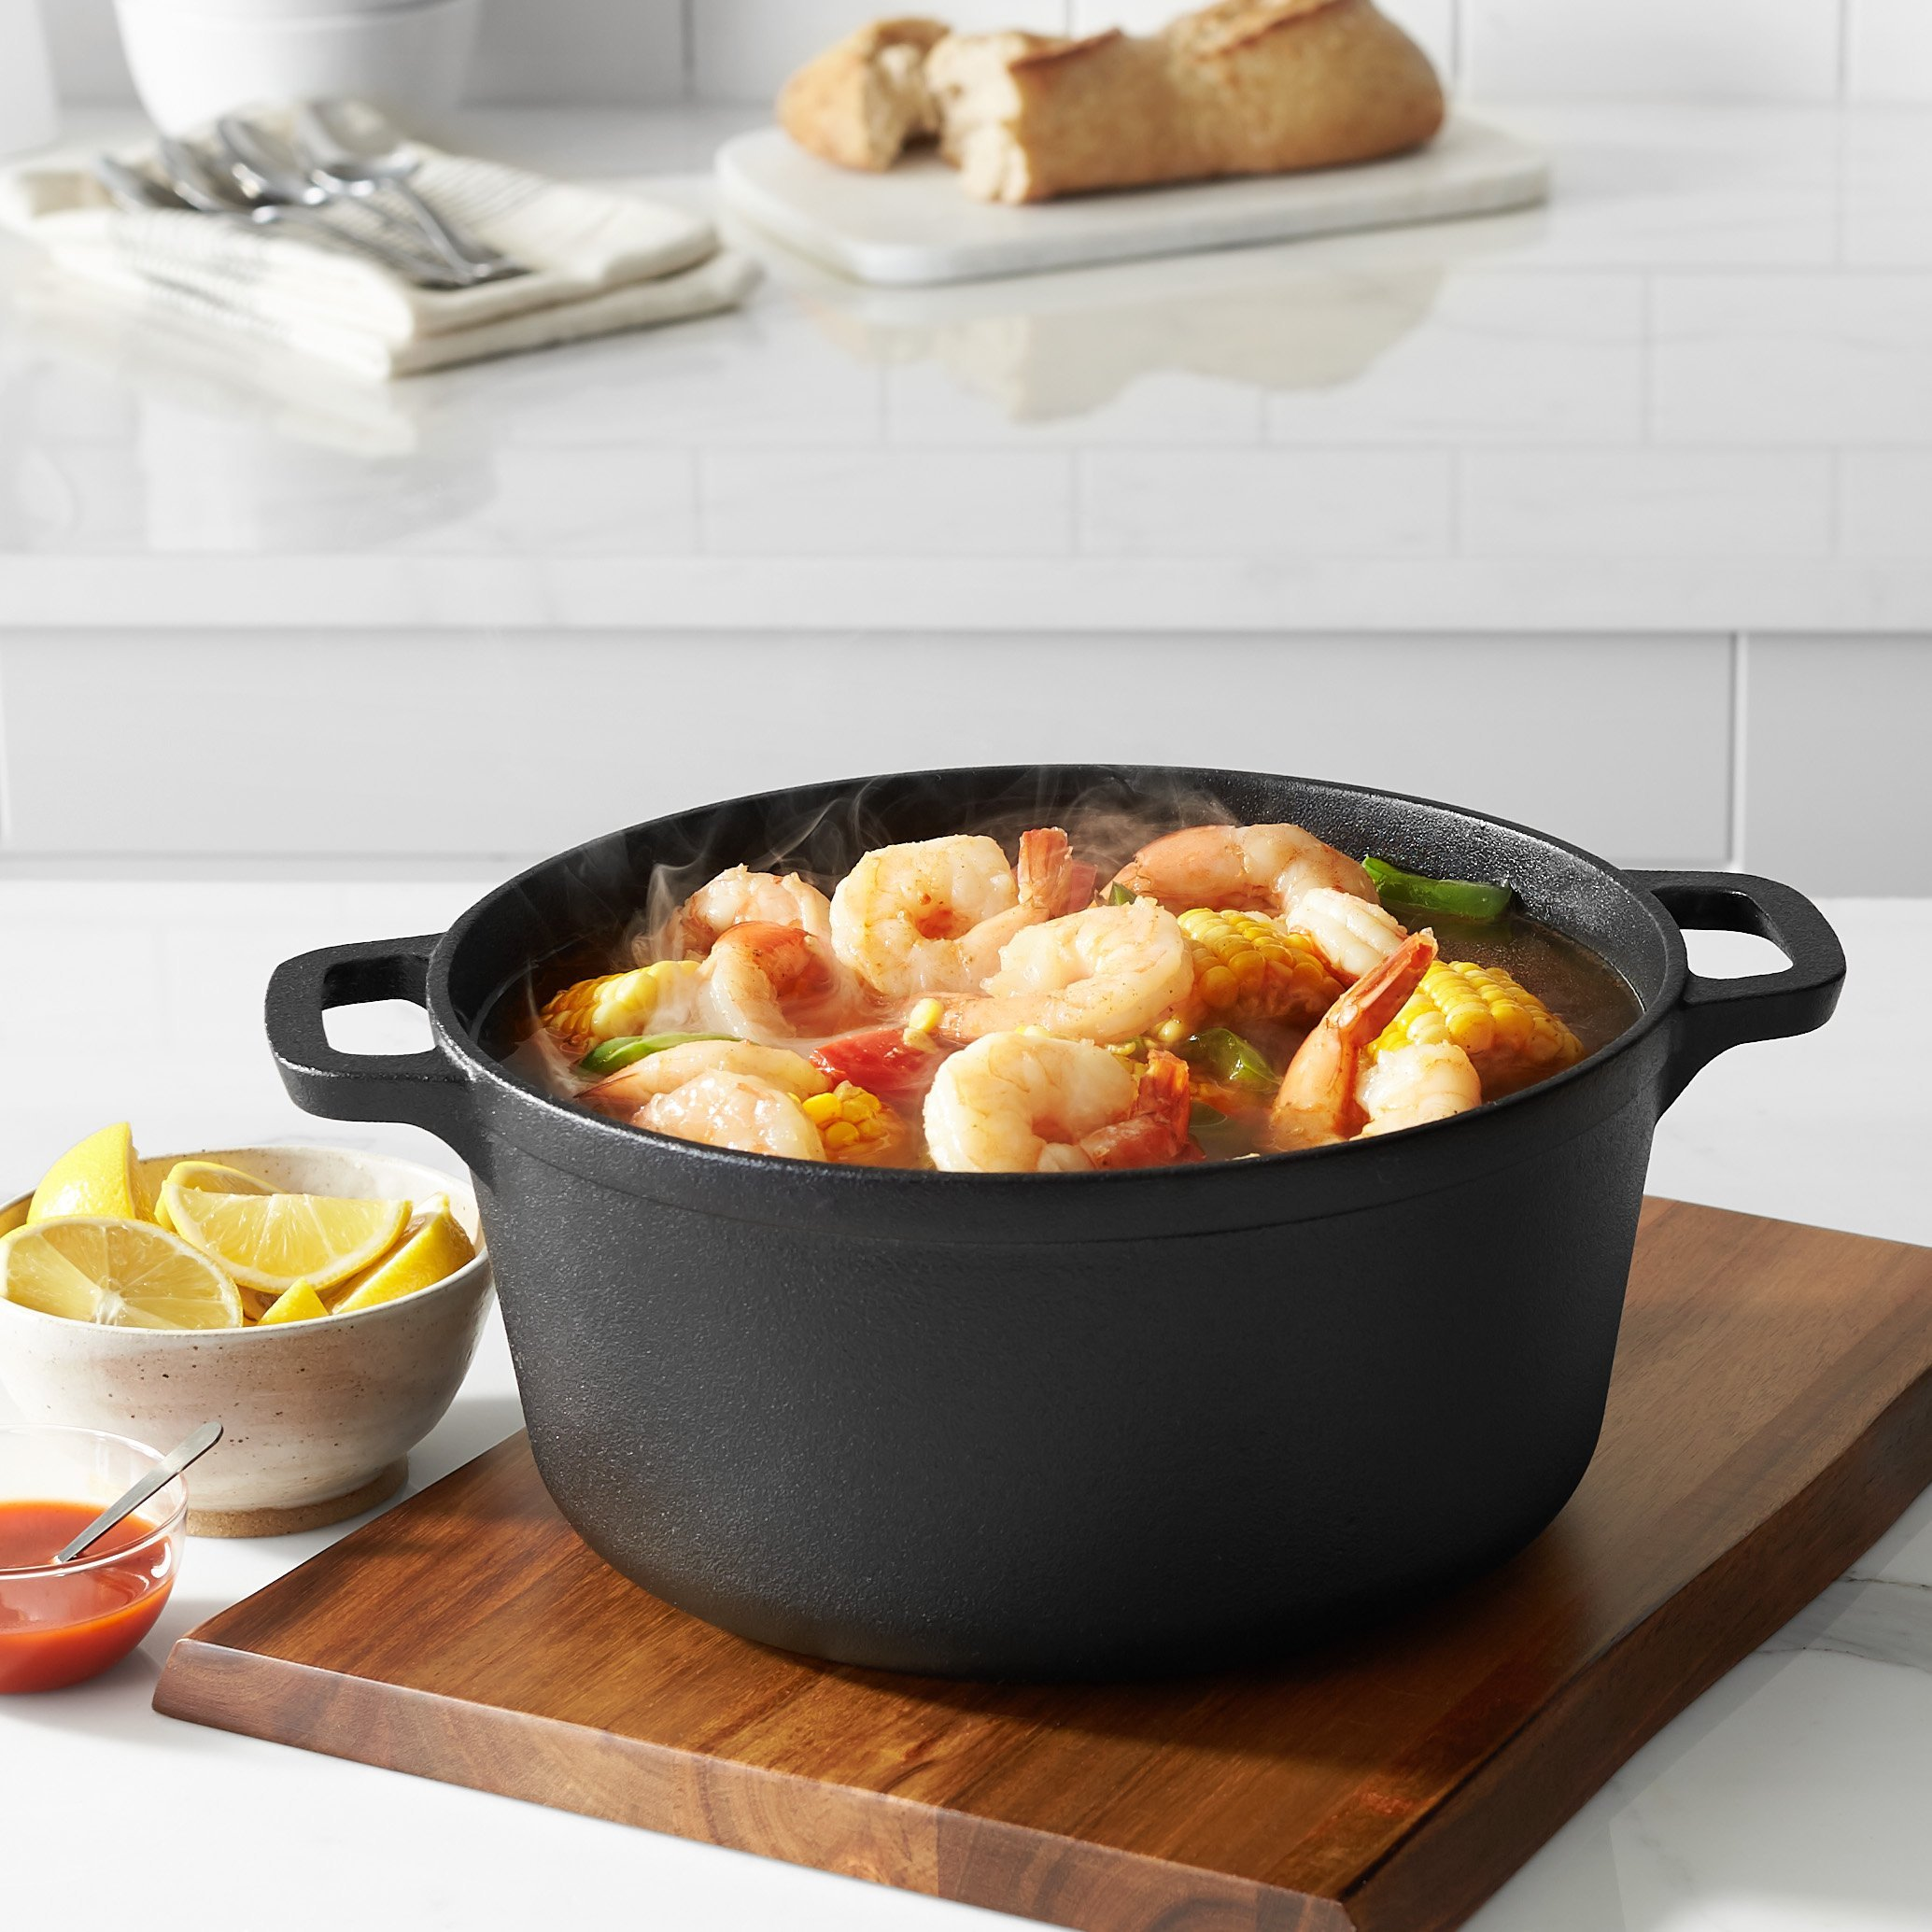 AmazonBasics Pre-Seasoned Cast Iron Dutch Oven with Dual Handles - 5-Quart by AmazonBasics (Image #3)